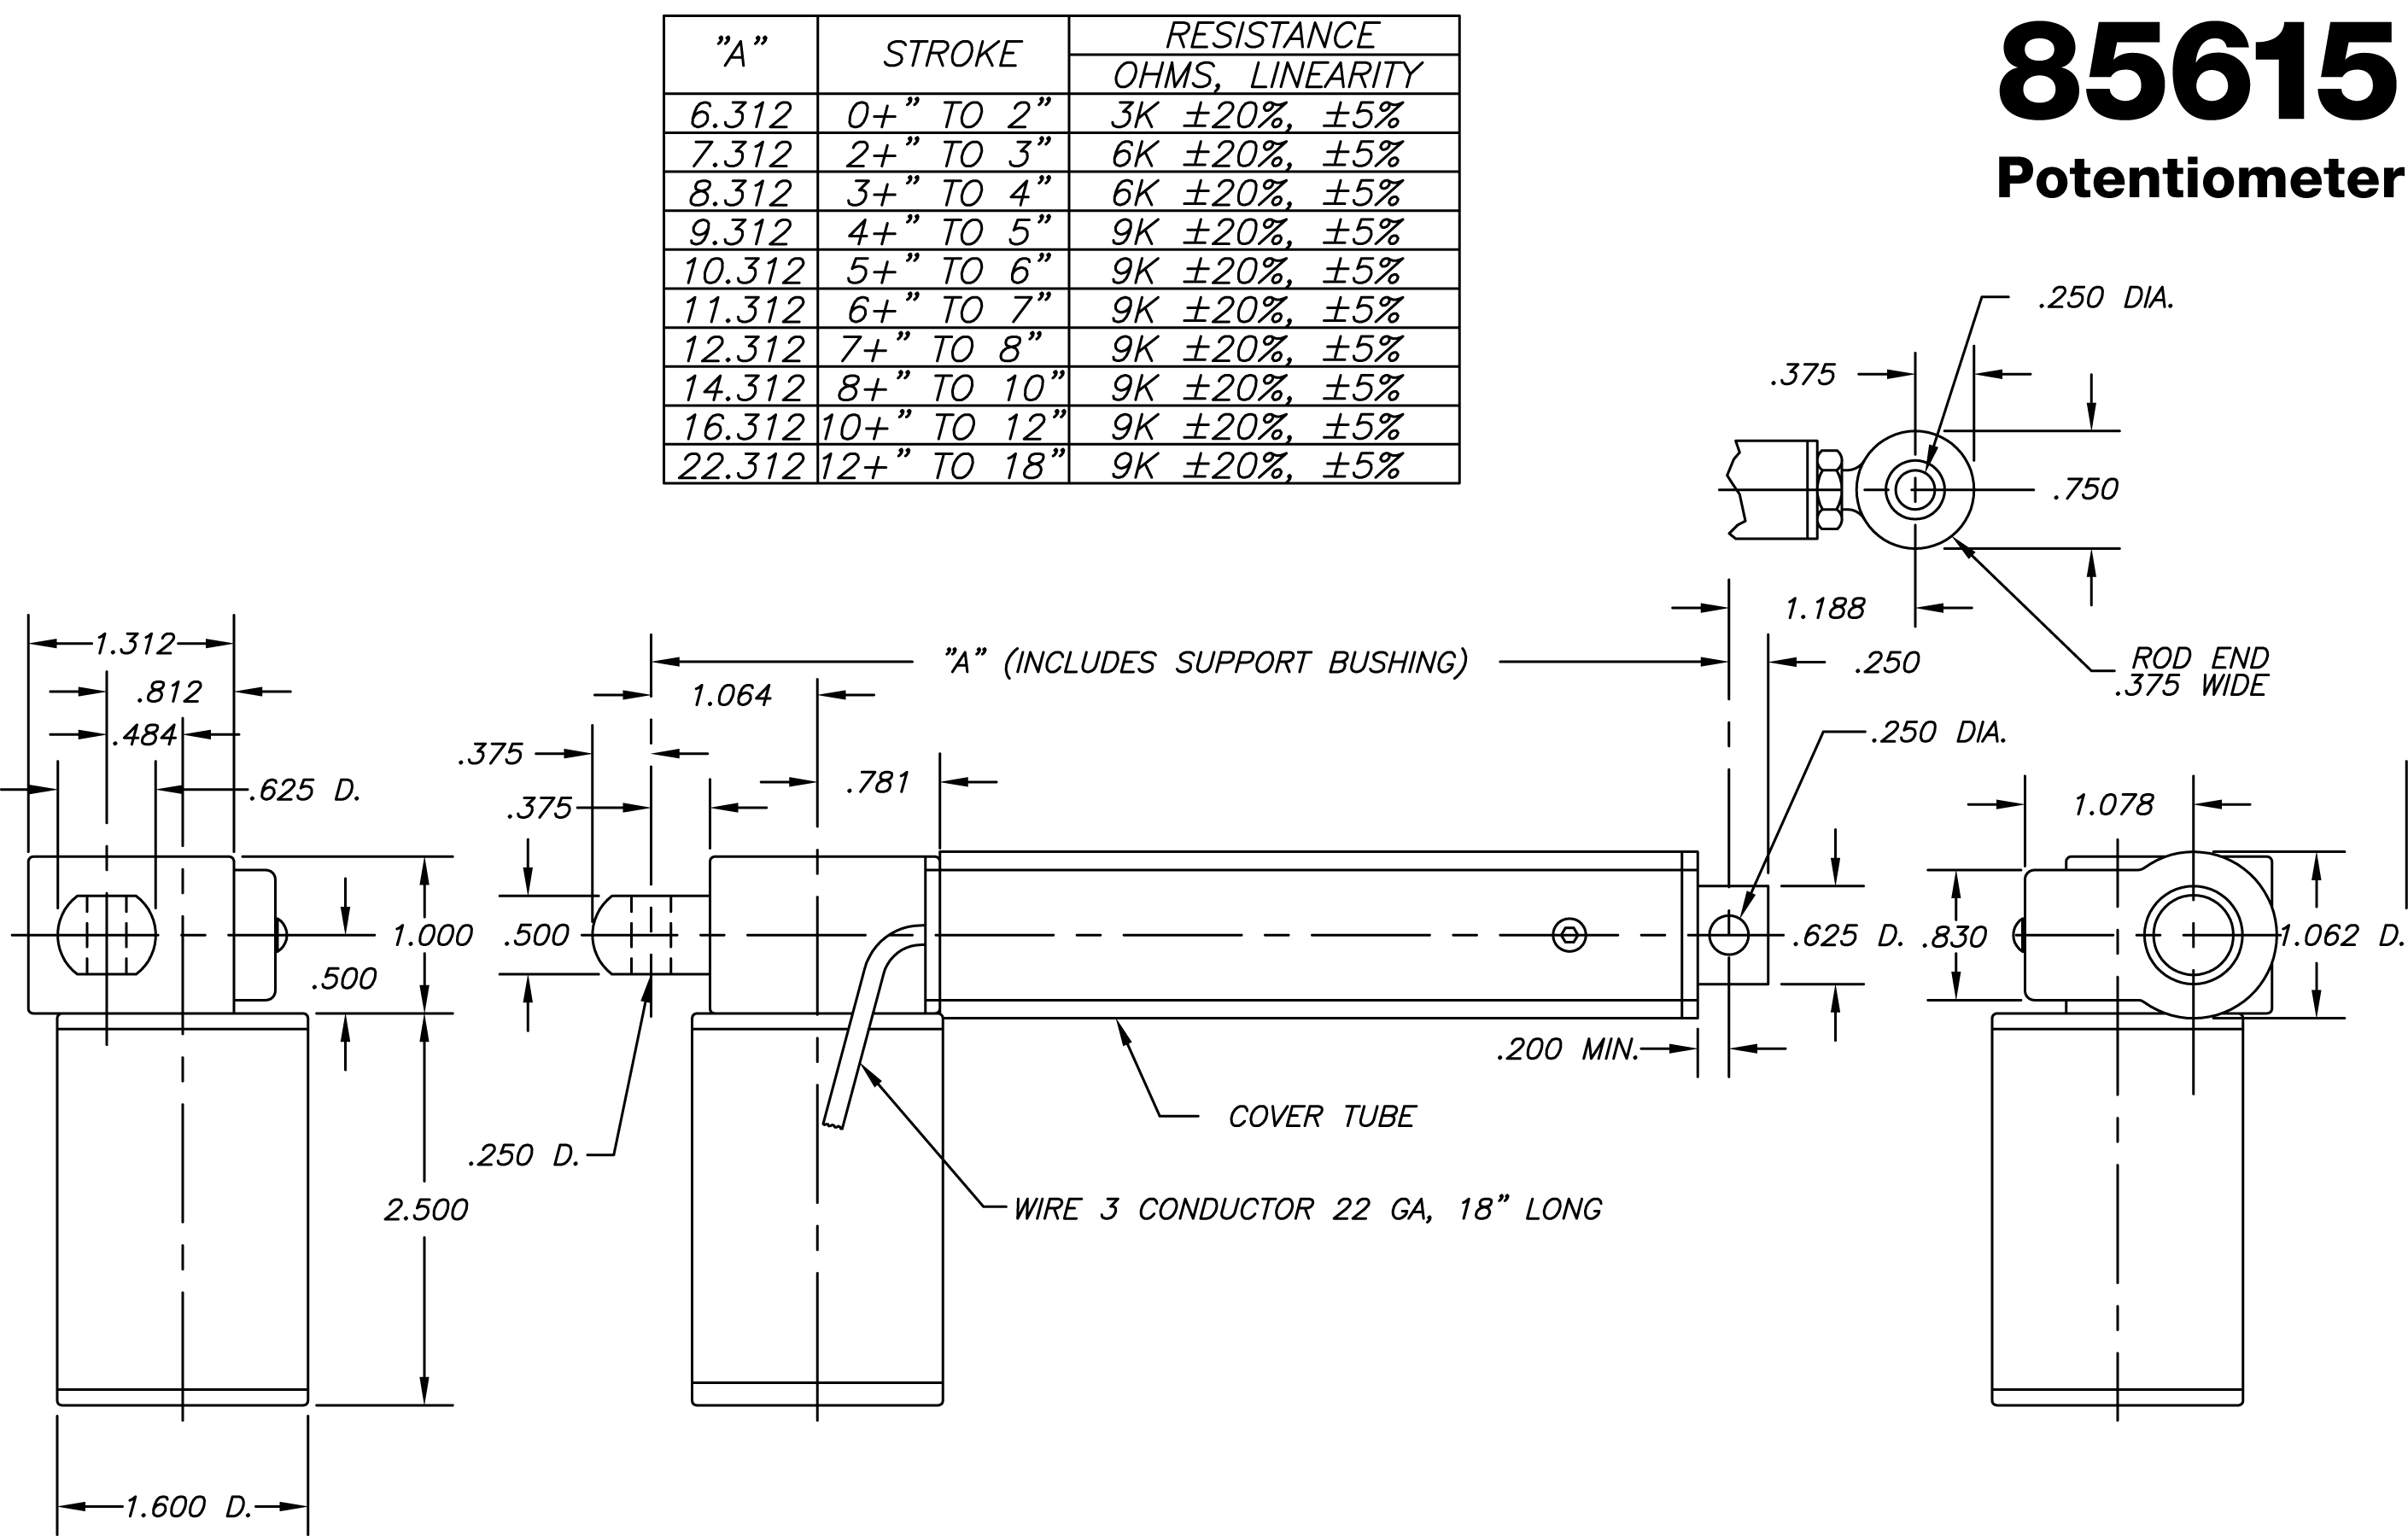 wiring diagram 24 volt actuator invacare